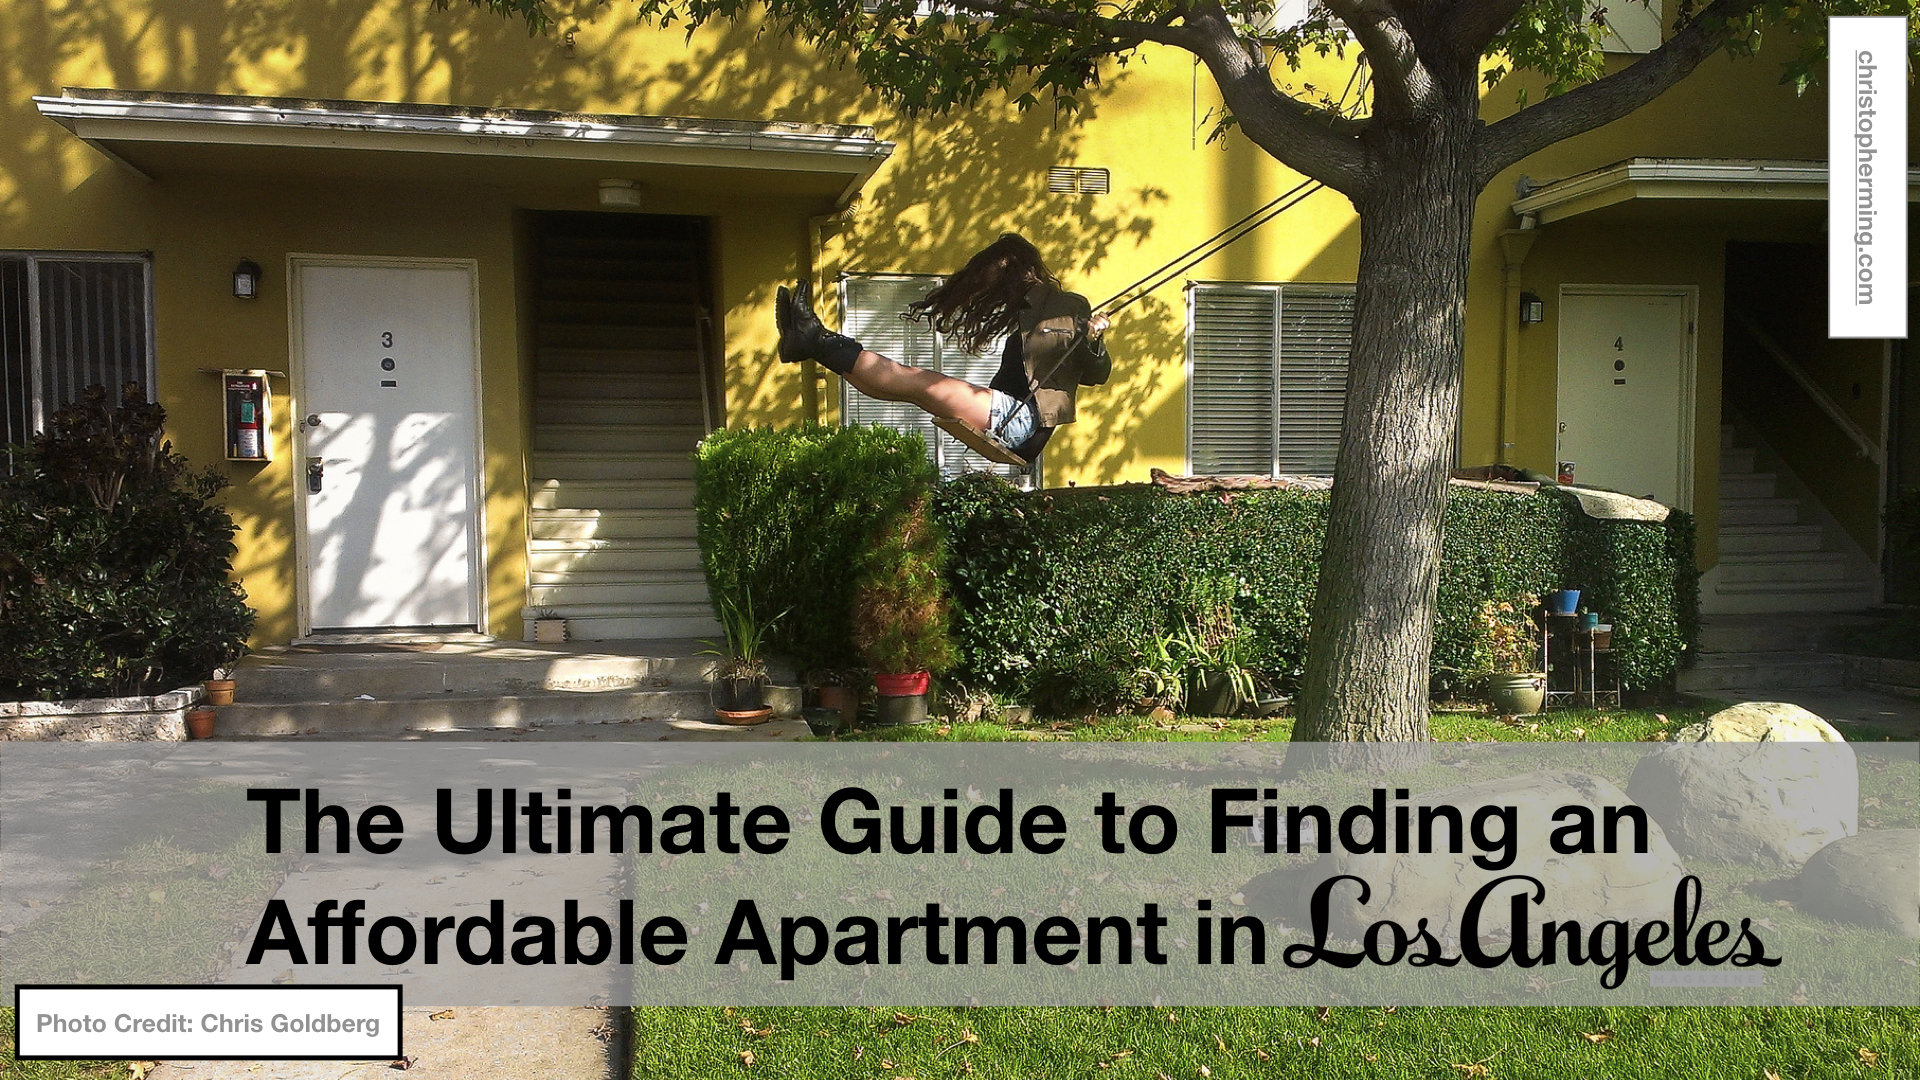 The Ultimate Guide to Finding an Affordable Apartment in Los Angeles